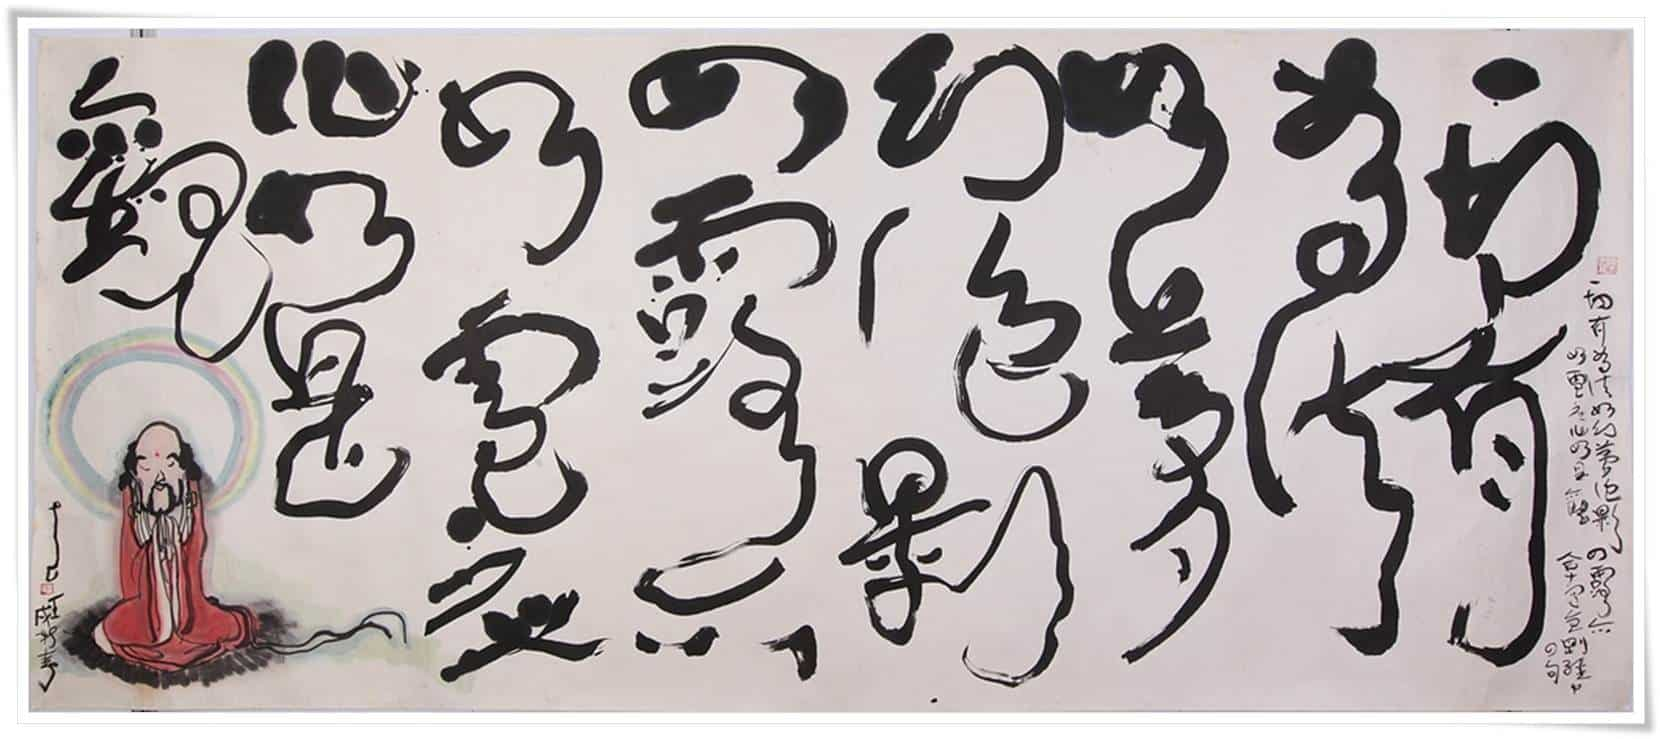 Figure_10-huang_yao_unique_chinese_calligraphy